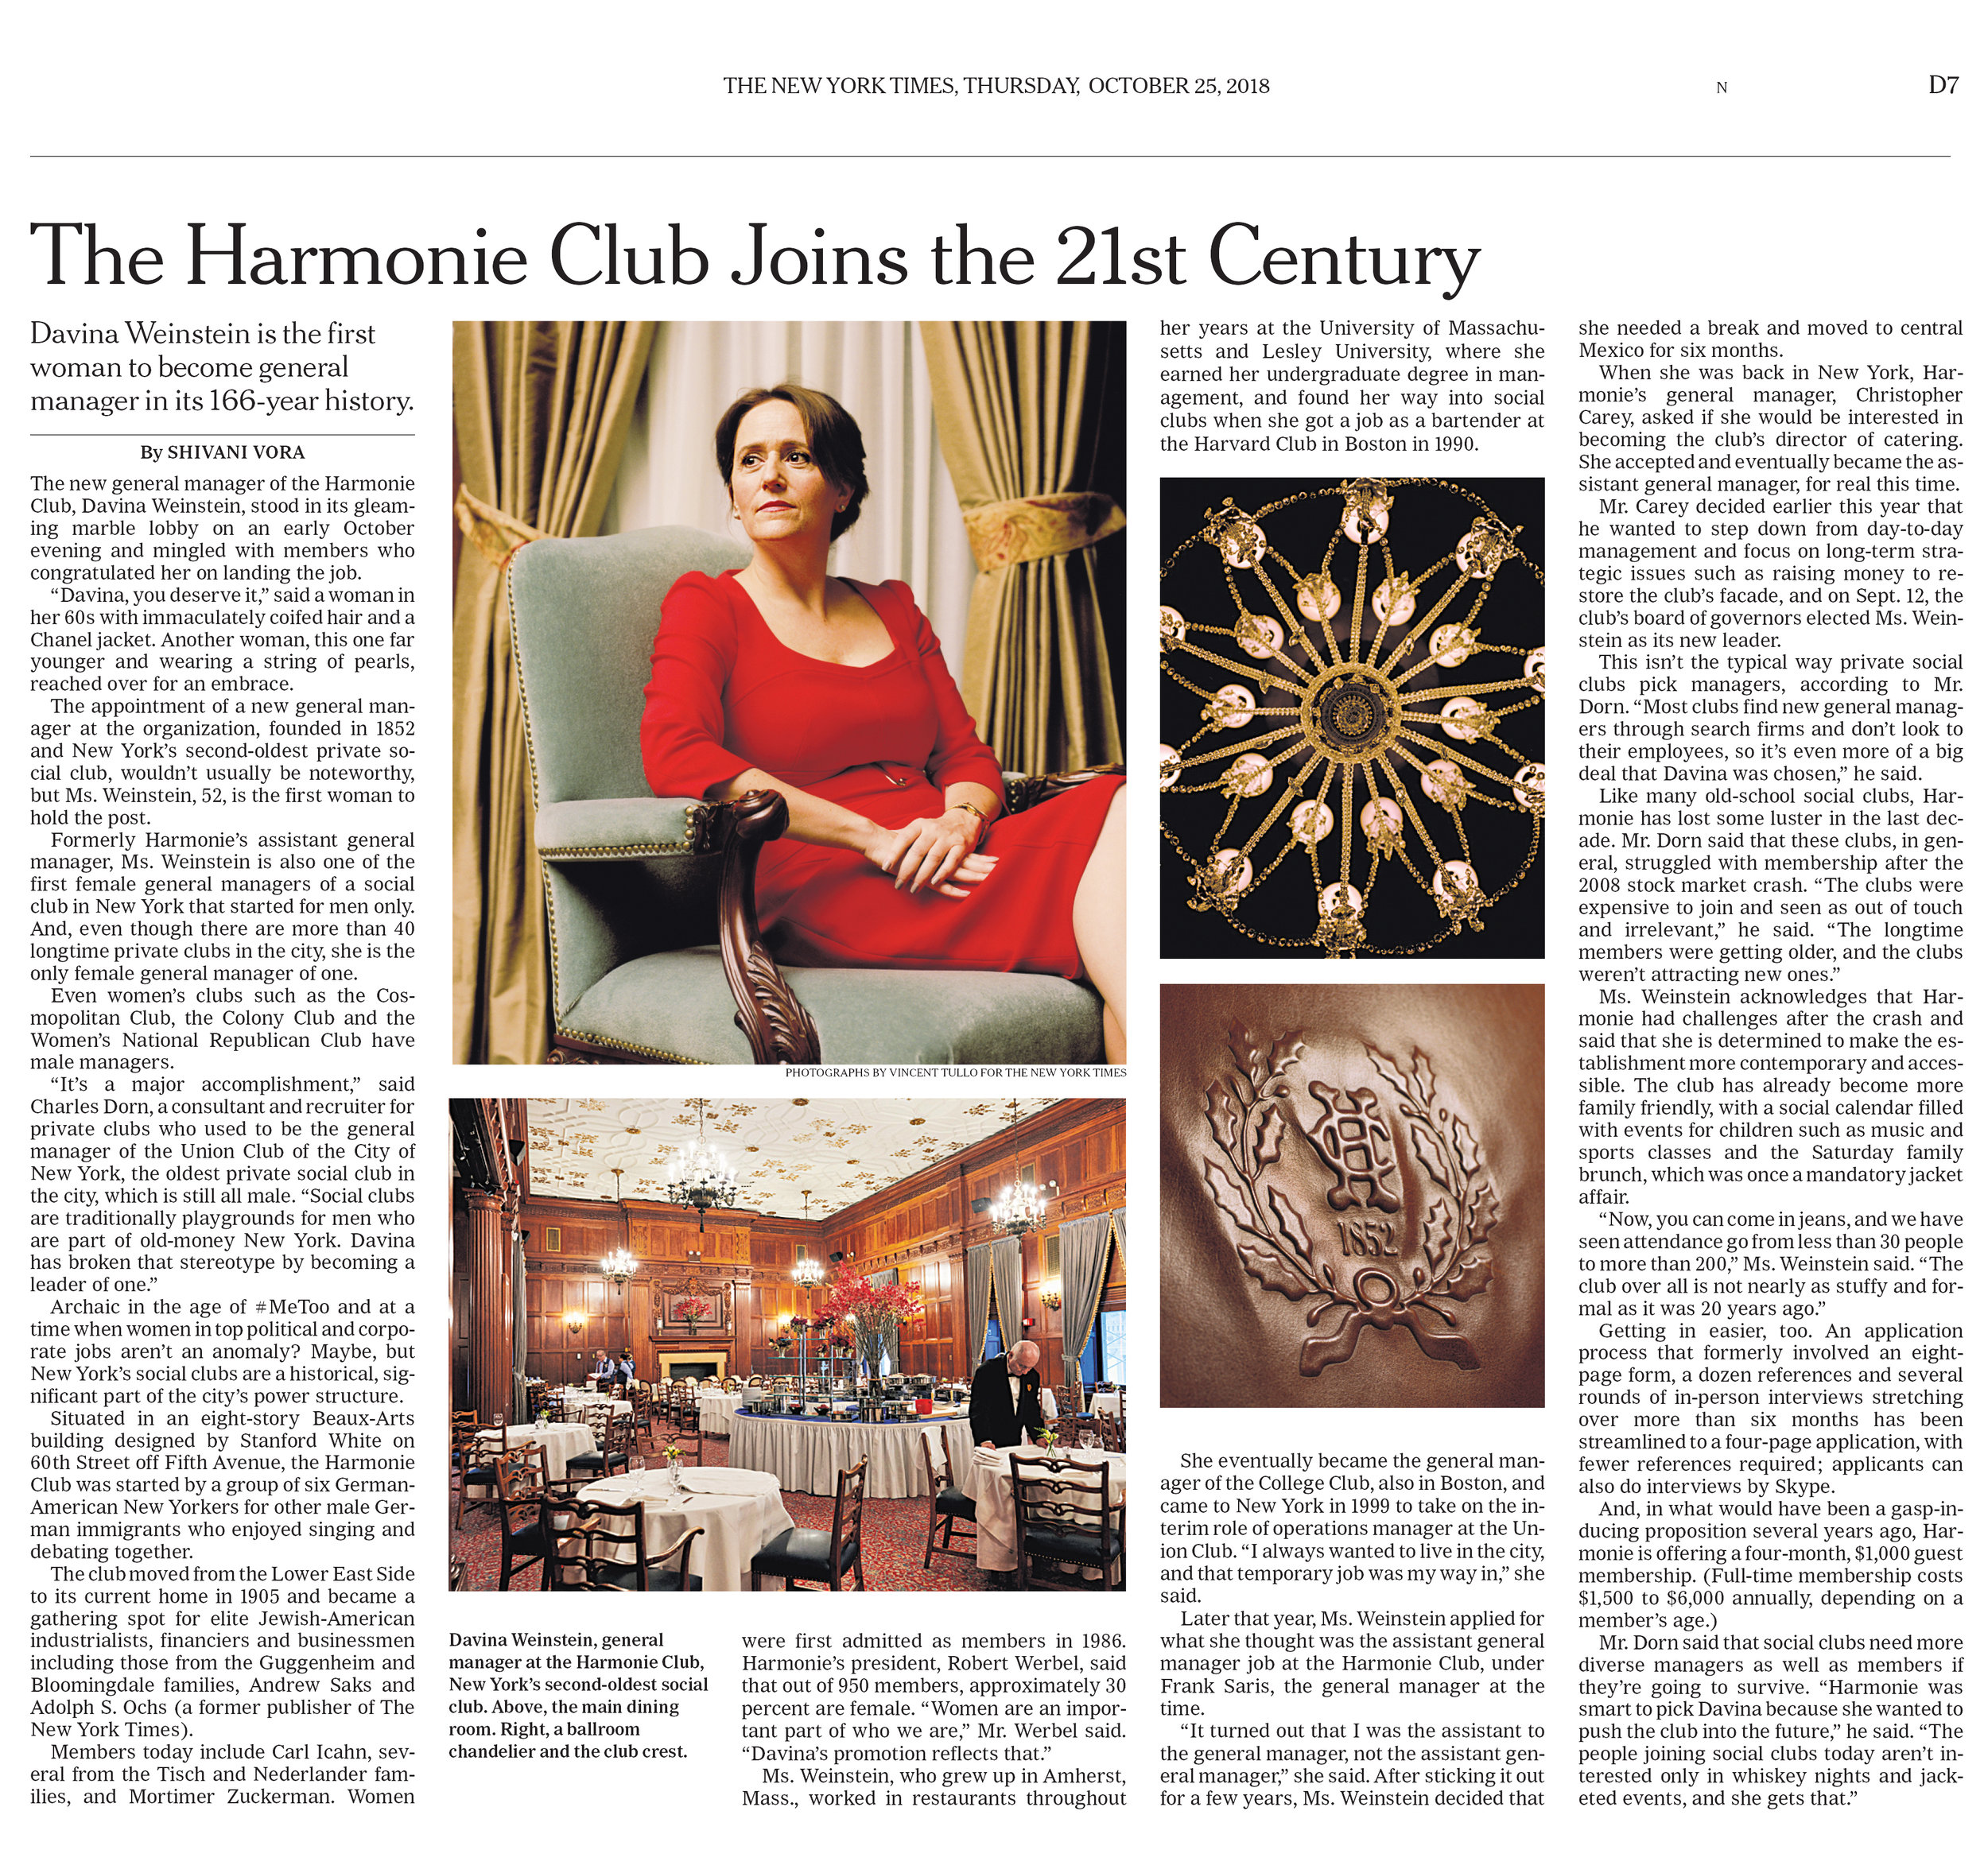 """The Harmonie Club Joins the 21st Century.""        Photos:   Vincent Tullo   Role:  Assignment."